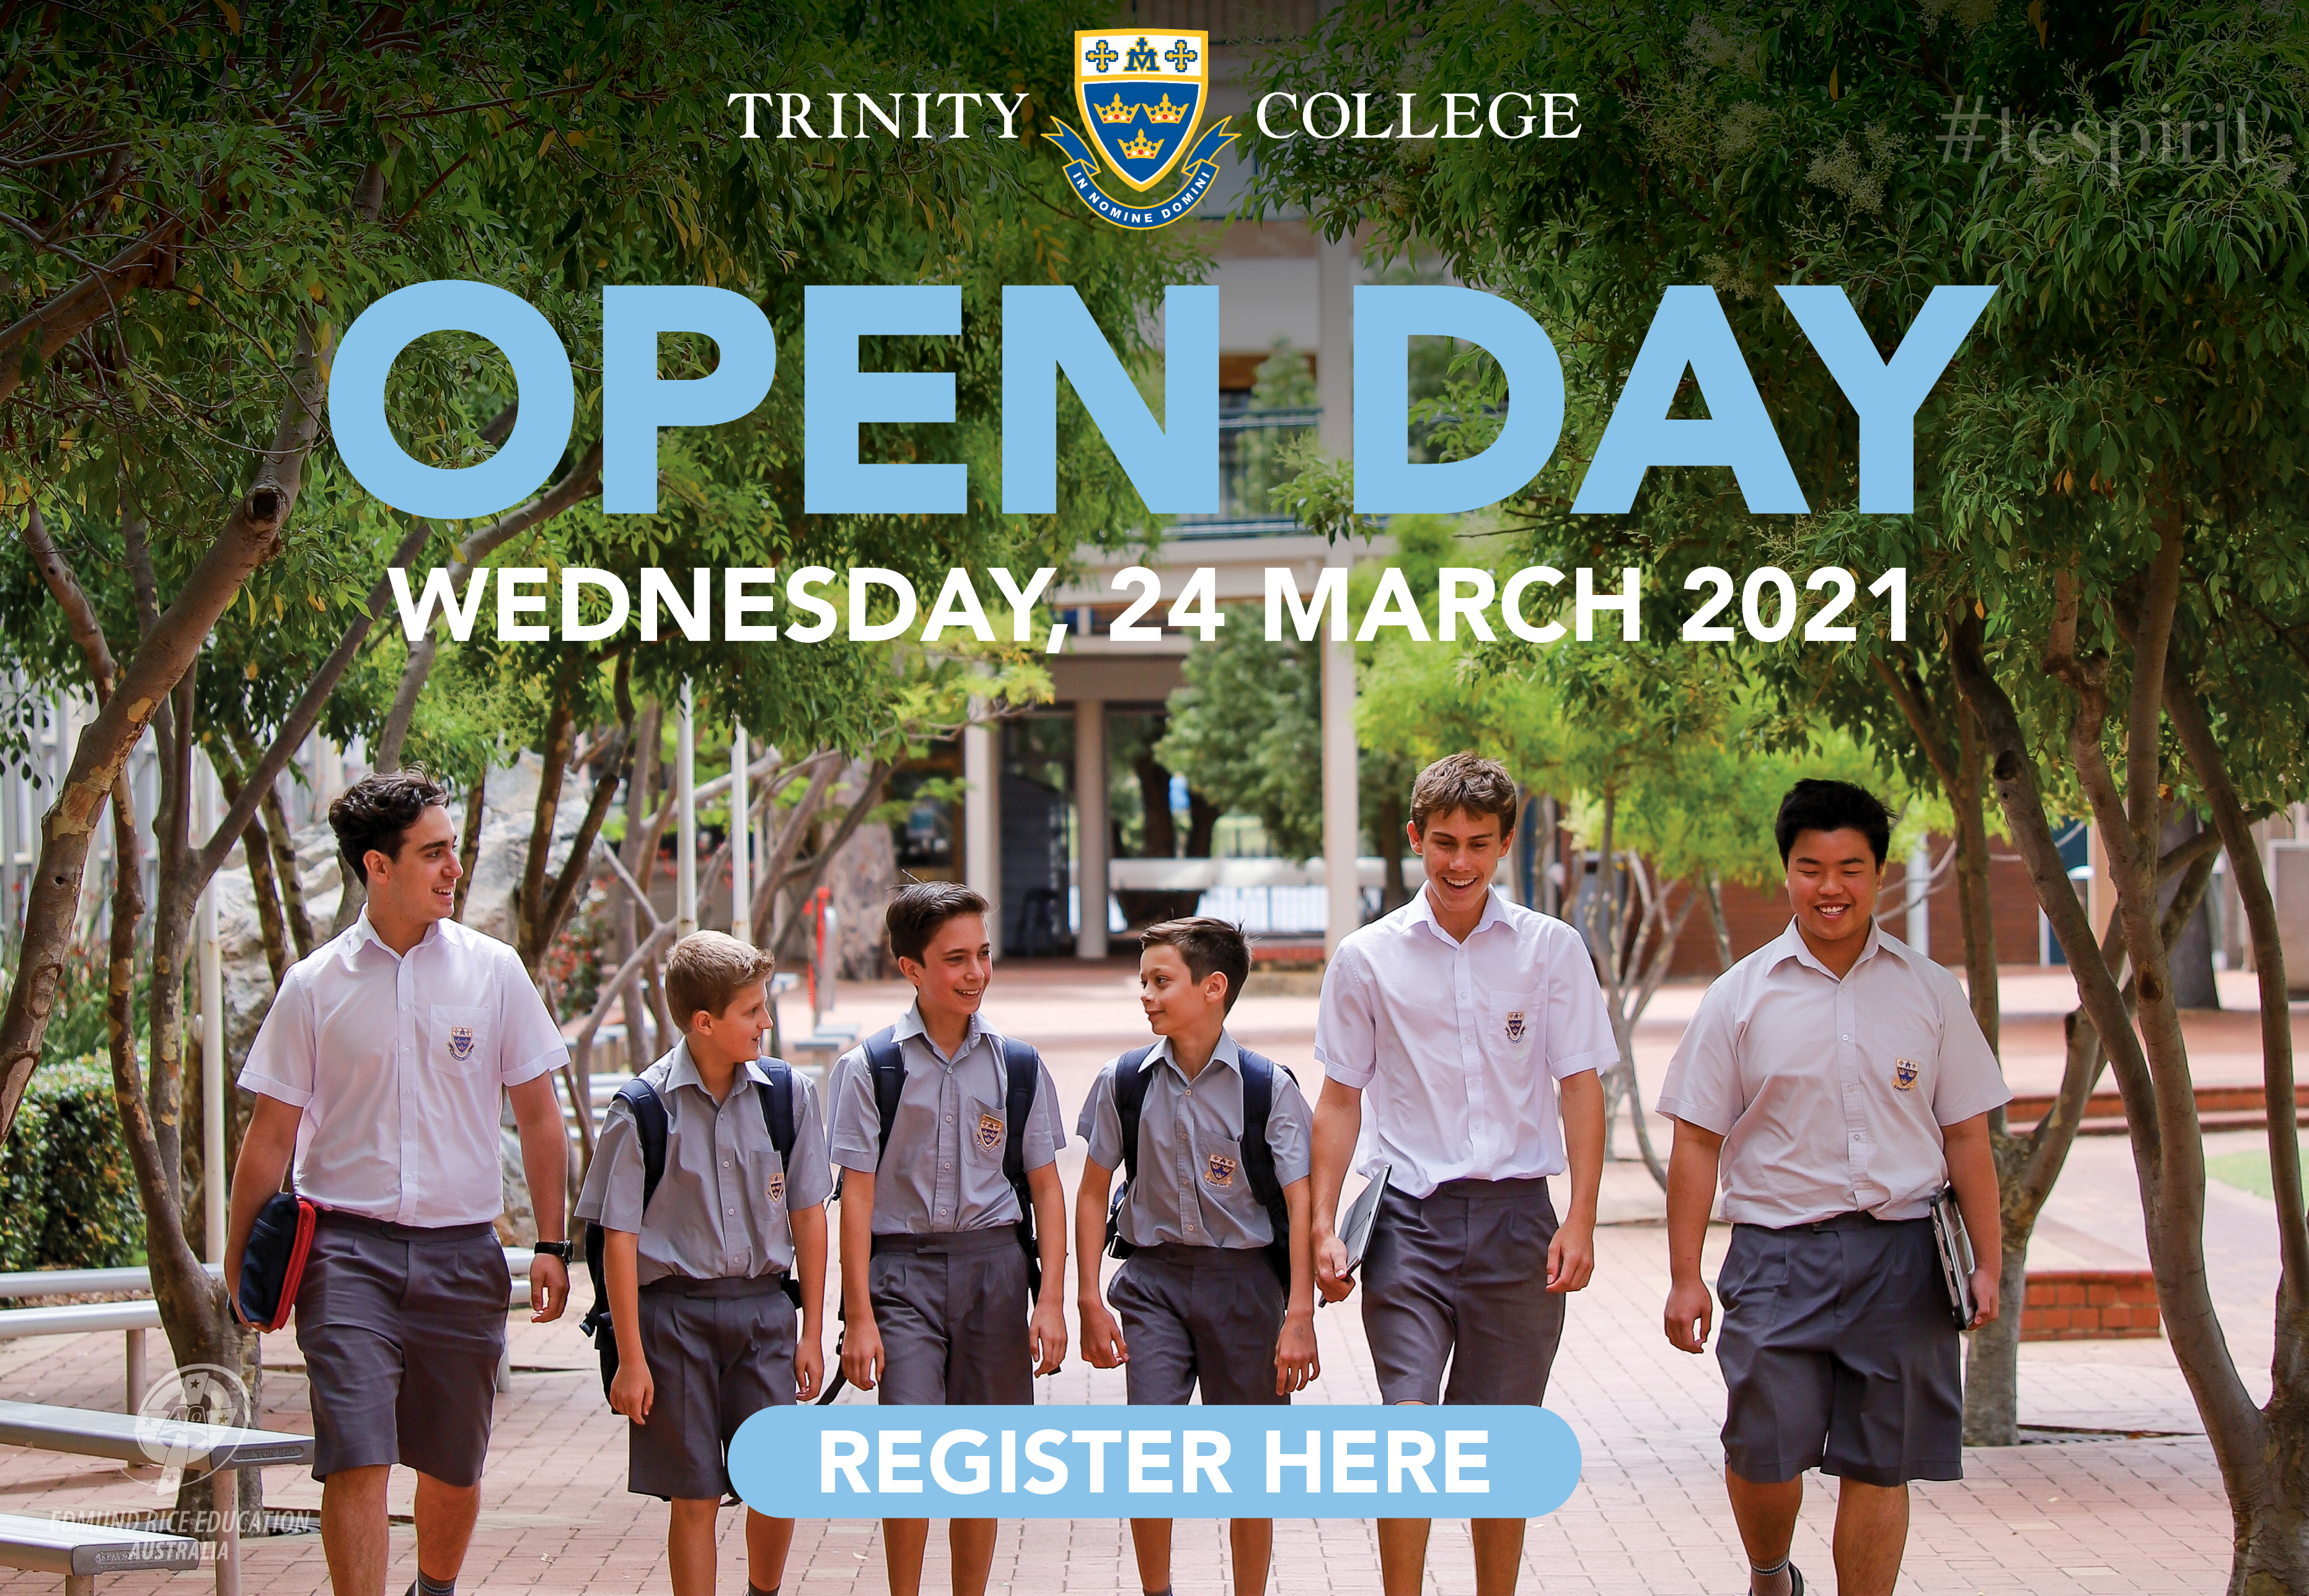 College Open Day 2021